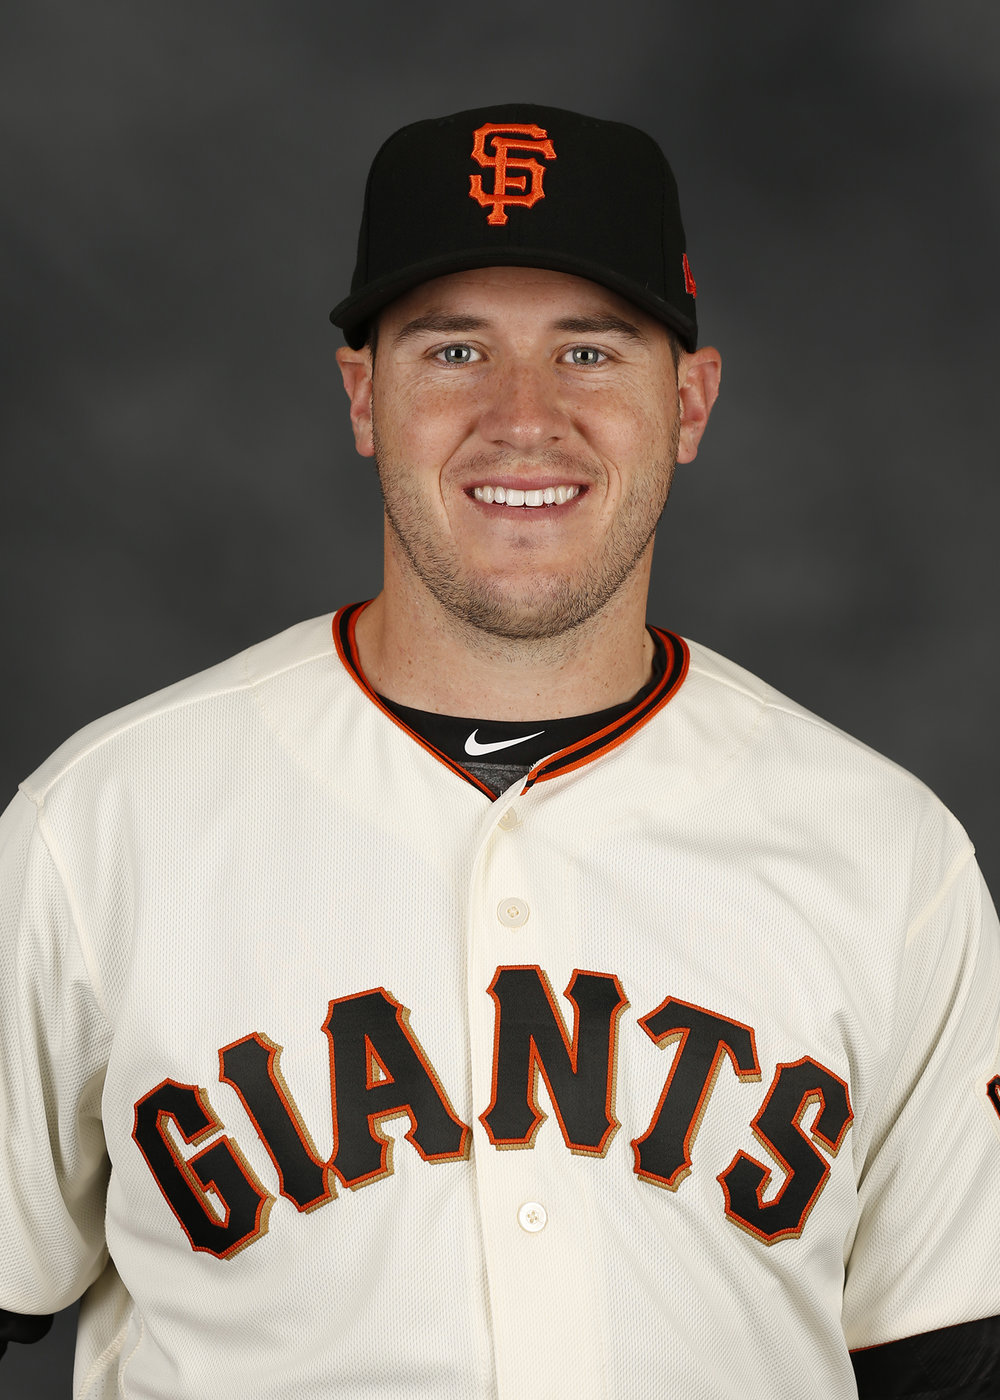 Ty Blach   Ty Blach was drafted by the San Francisco Giants in 2012 and joined the big league club in 2016.  In 2017, Blach tied for second on the Giants in wins and placed third in innings pitched. He also led all rookies in innings pitched. On June 2, he tossed a complete-game shutout against the Phillies.